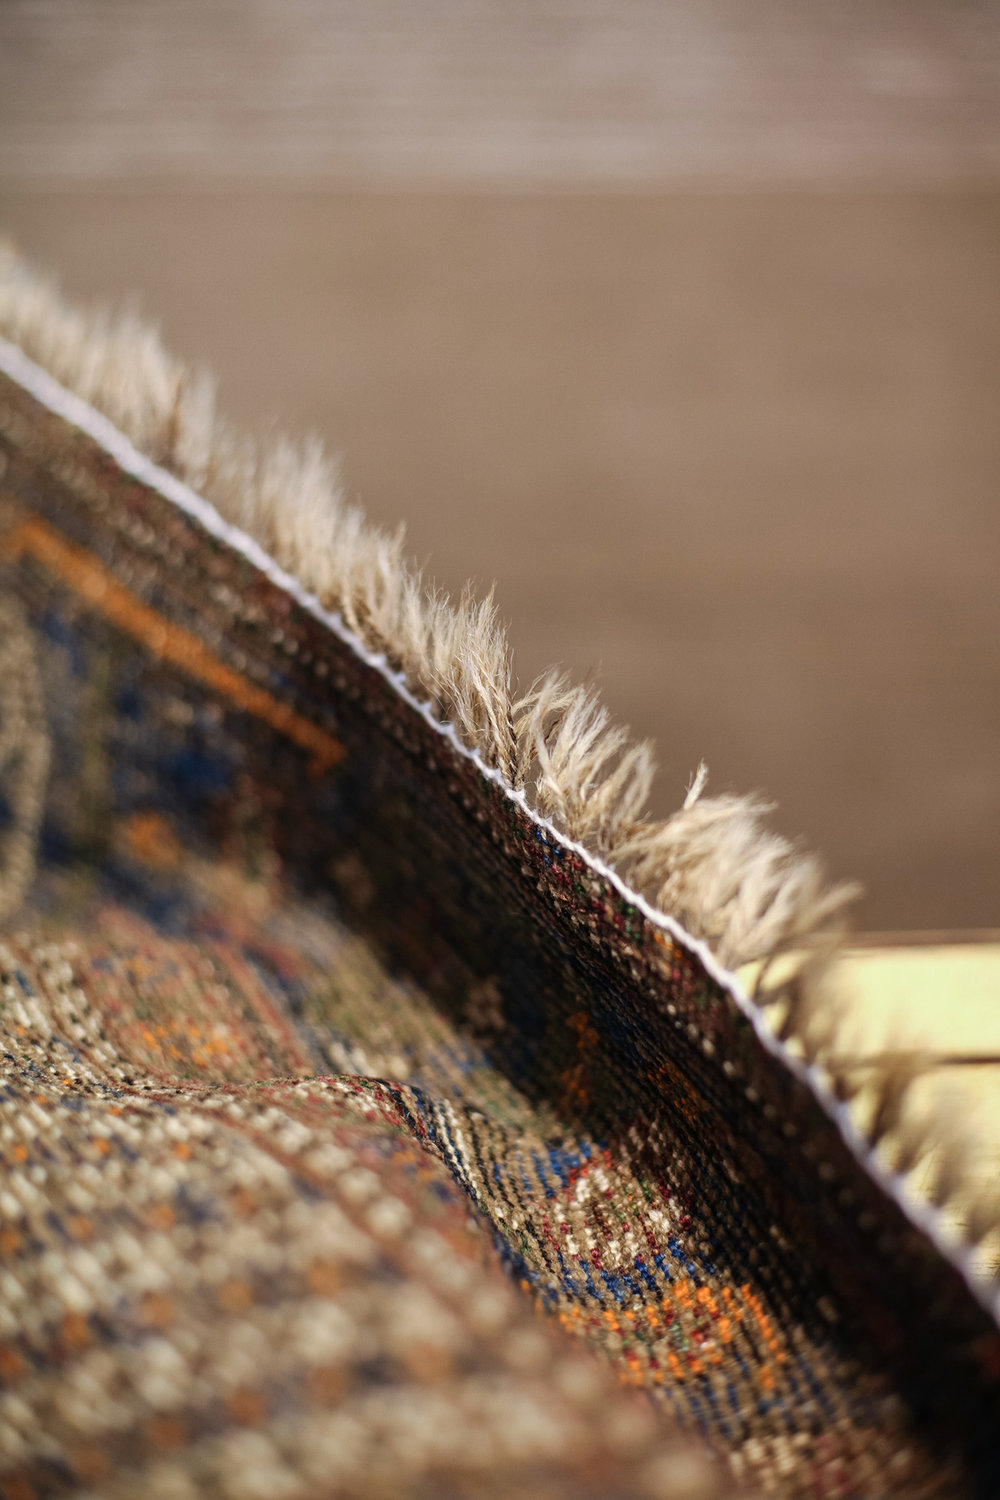 80-TAPIS-ROYAL©Augustin-Le_Gall-HAYTHAM-PICTURES-IMG_1174.jpg